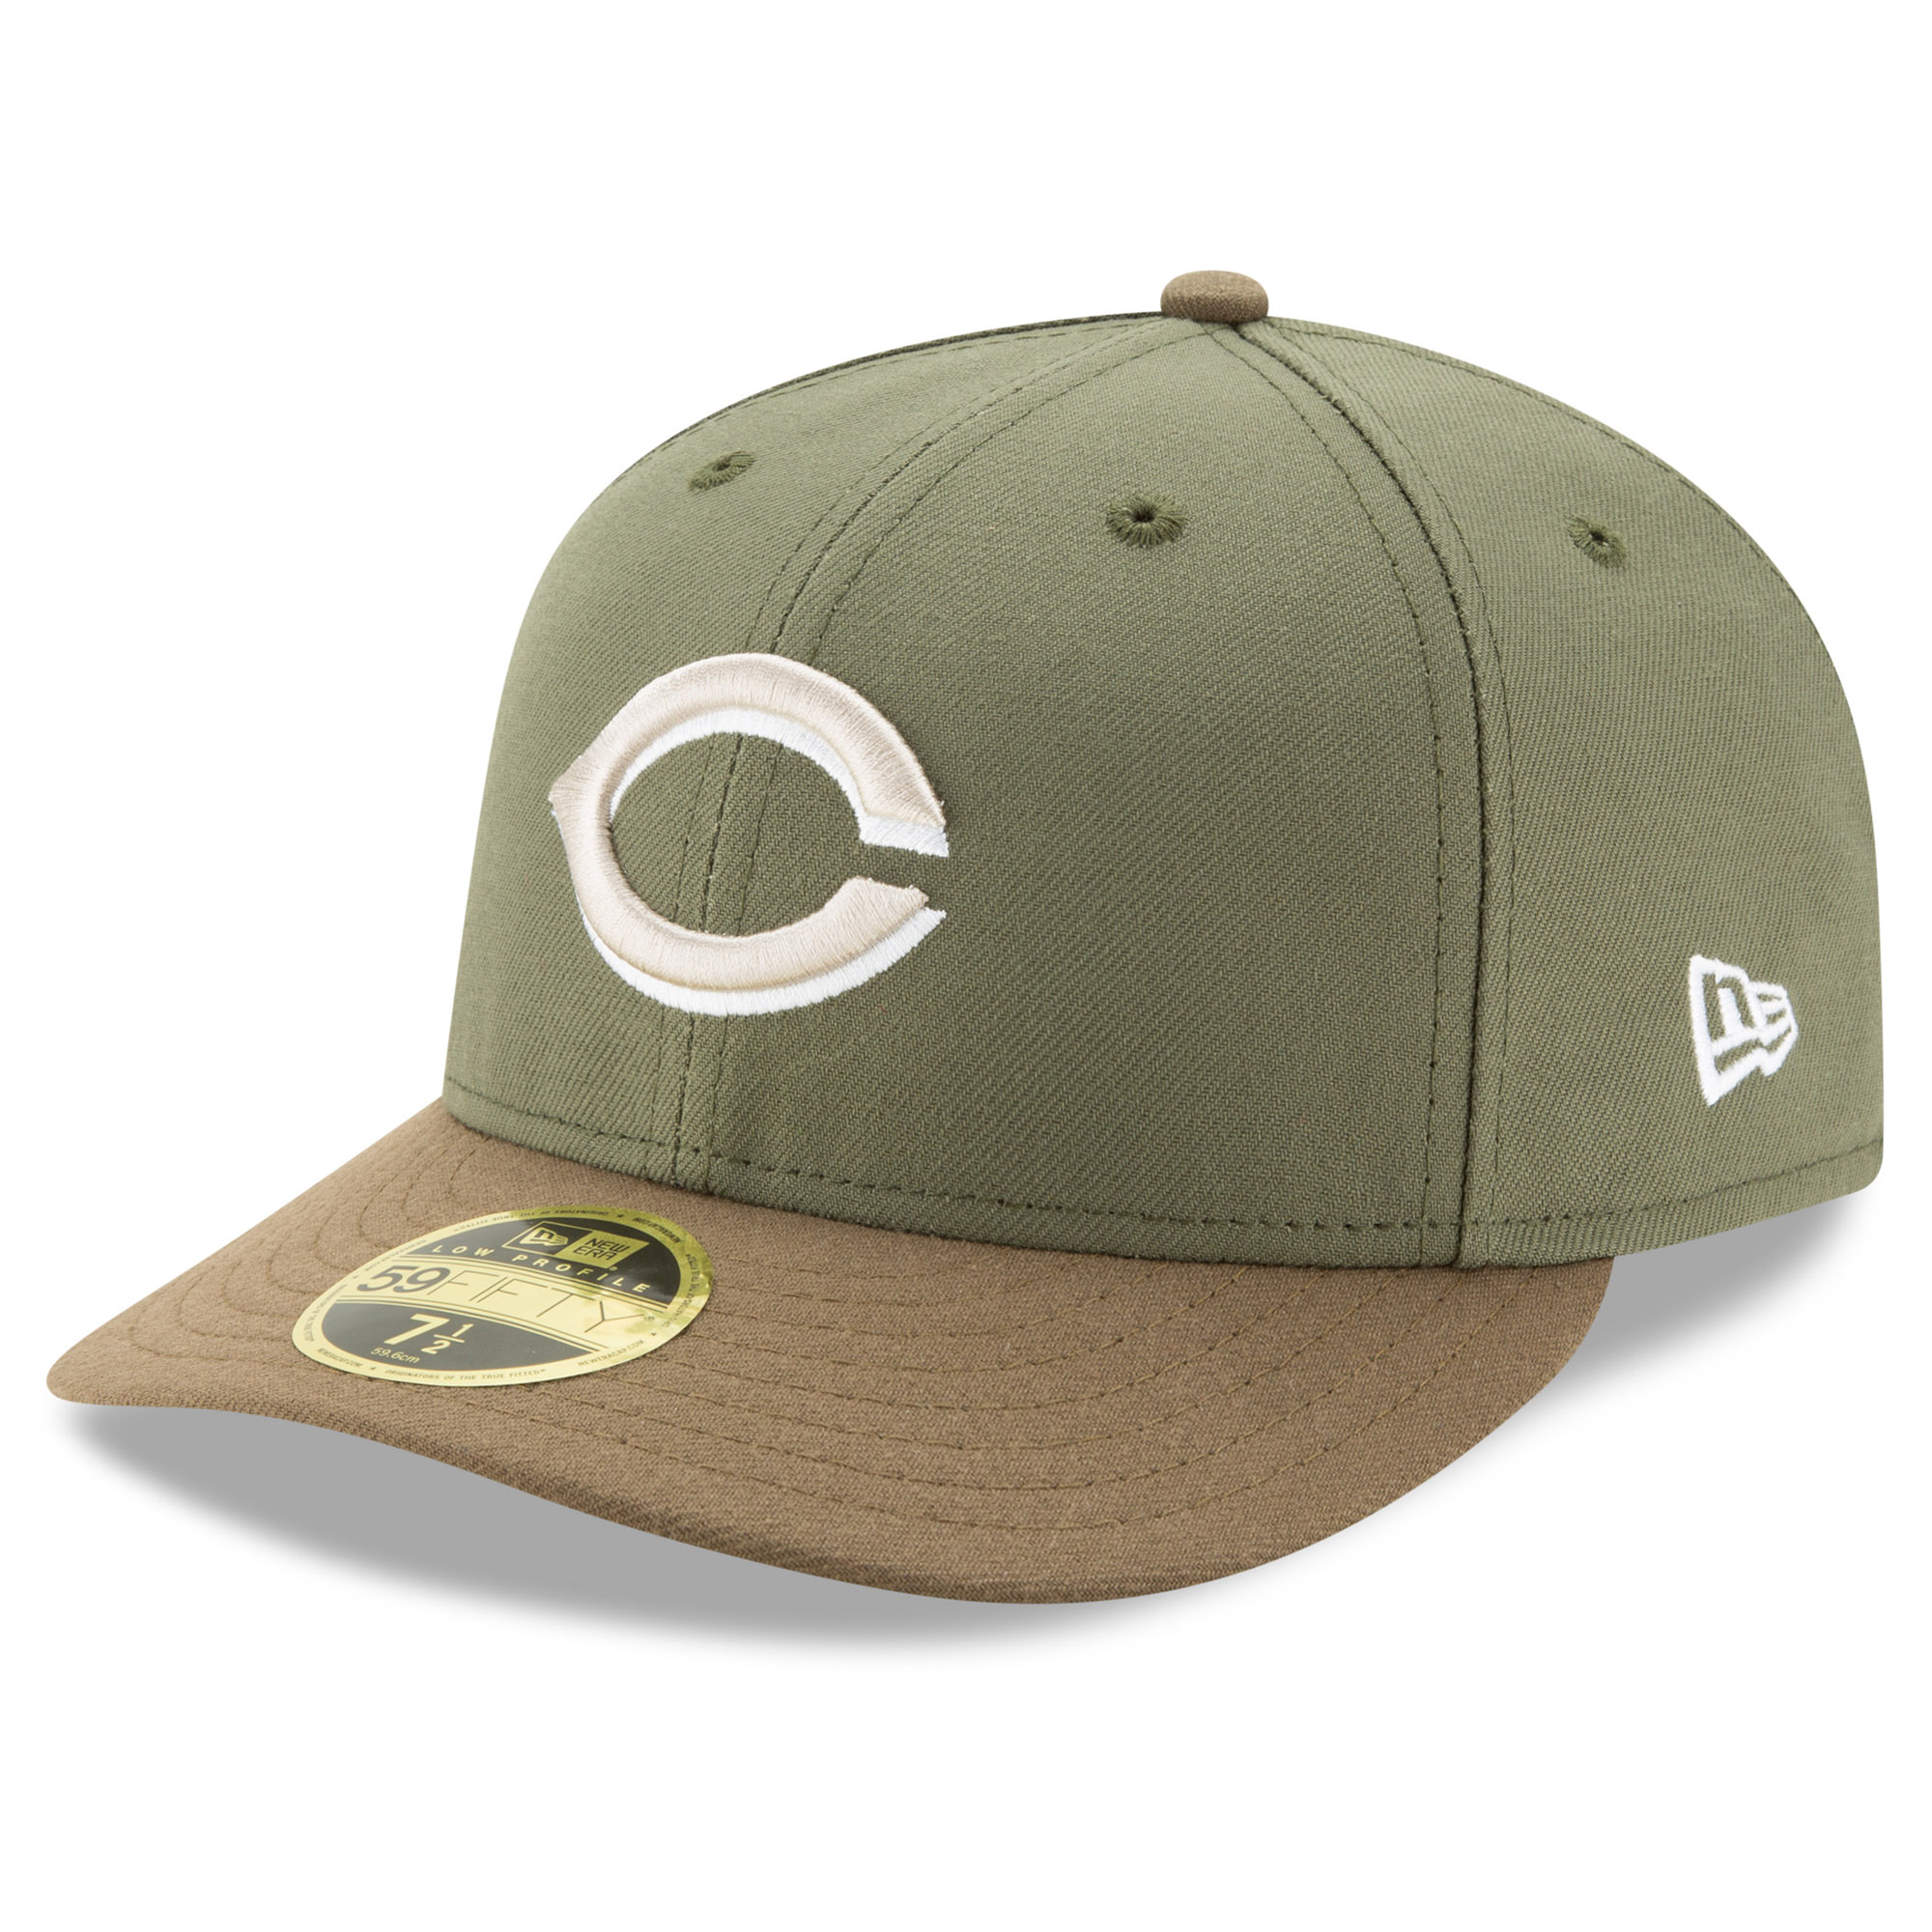 Cincinnati Reds New Era Alternate 2 Authentic Collection On-Field Low Profile 59FIFTY Fitted Hat - Olive/Brown